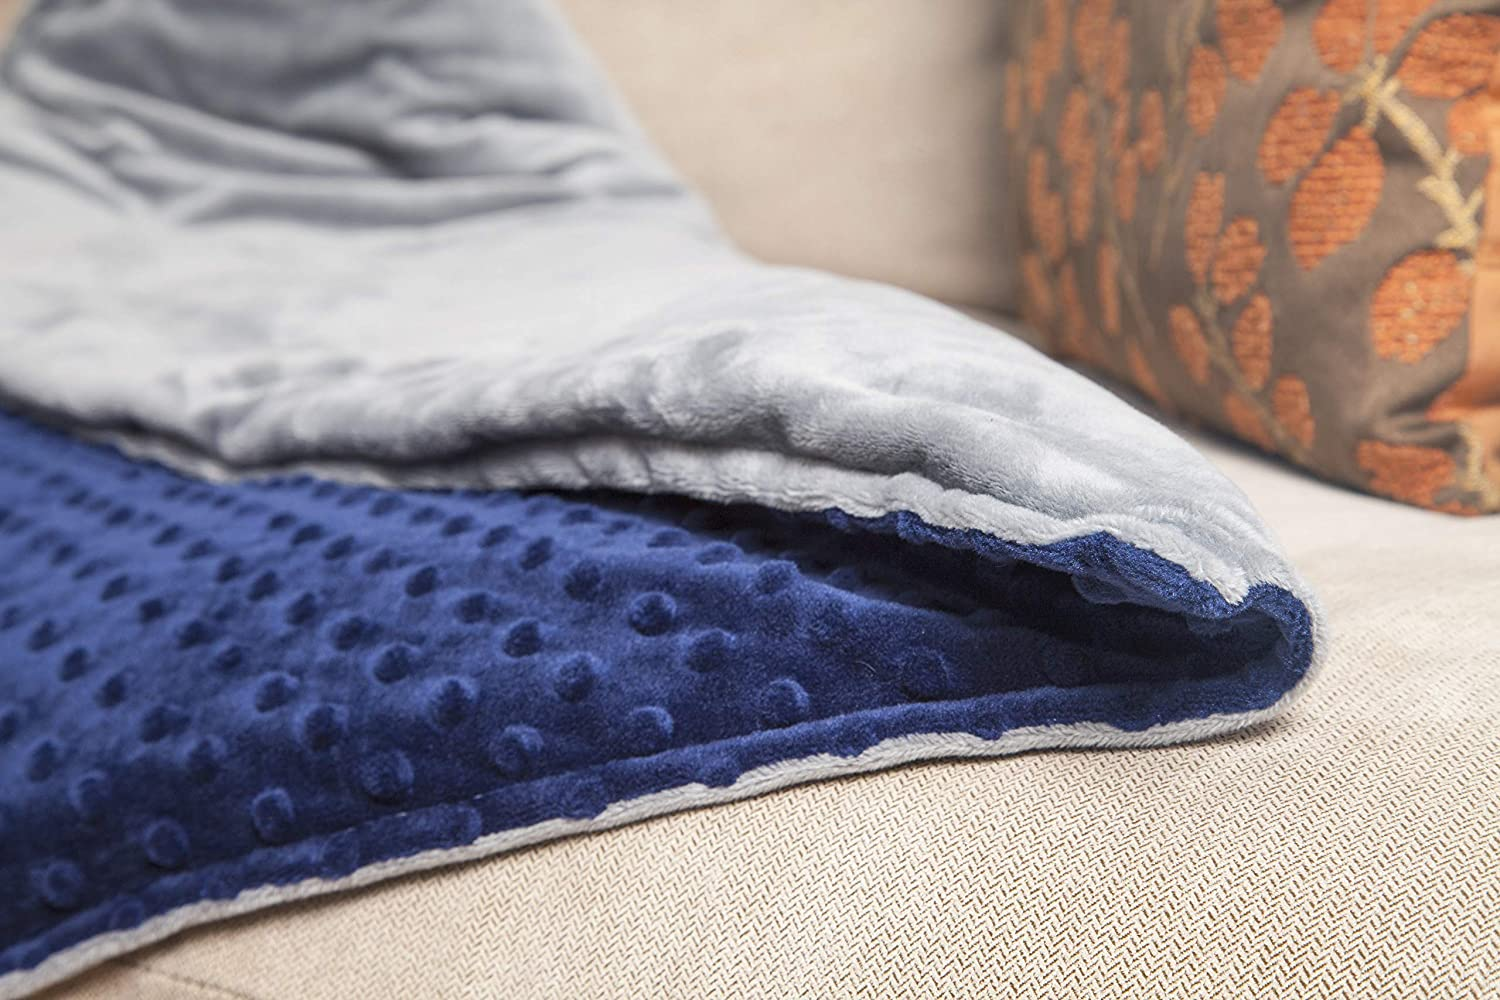 Roore 15 lb Adult 48x72 Navy Blue and Gray Weighted Blanket with Dotted Minkey Cover Perfect for Adults Men and Women for 125 to 175 lb Adult